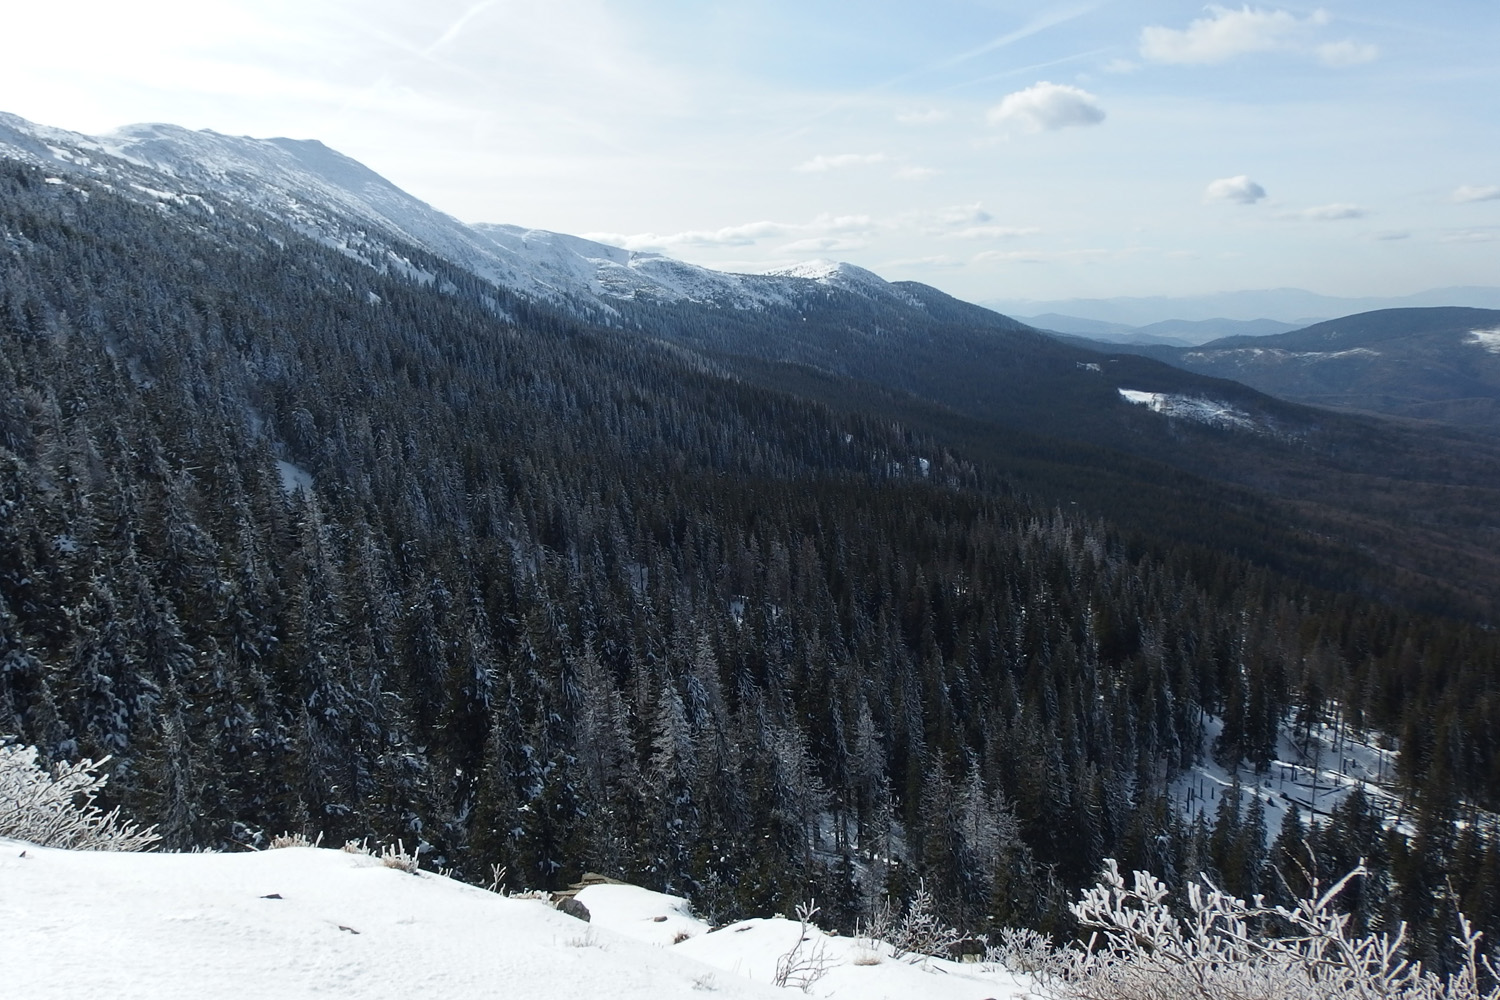 babia góra national park in poland in winter